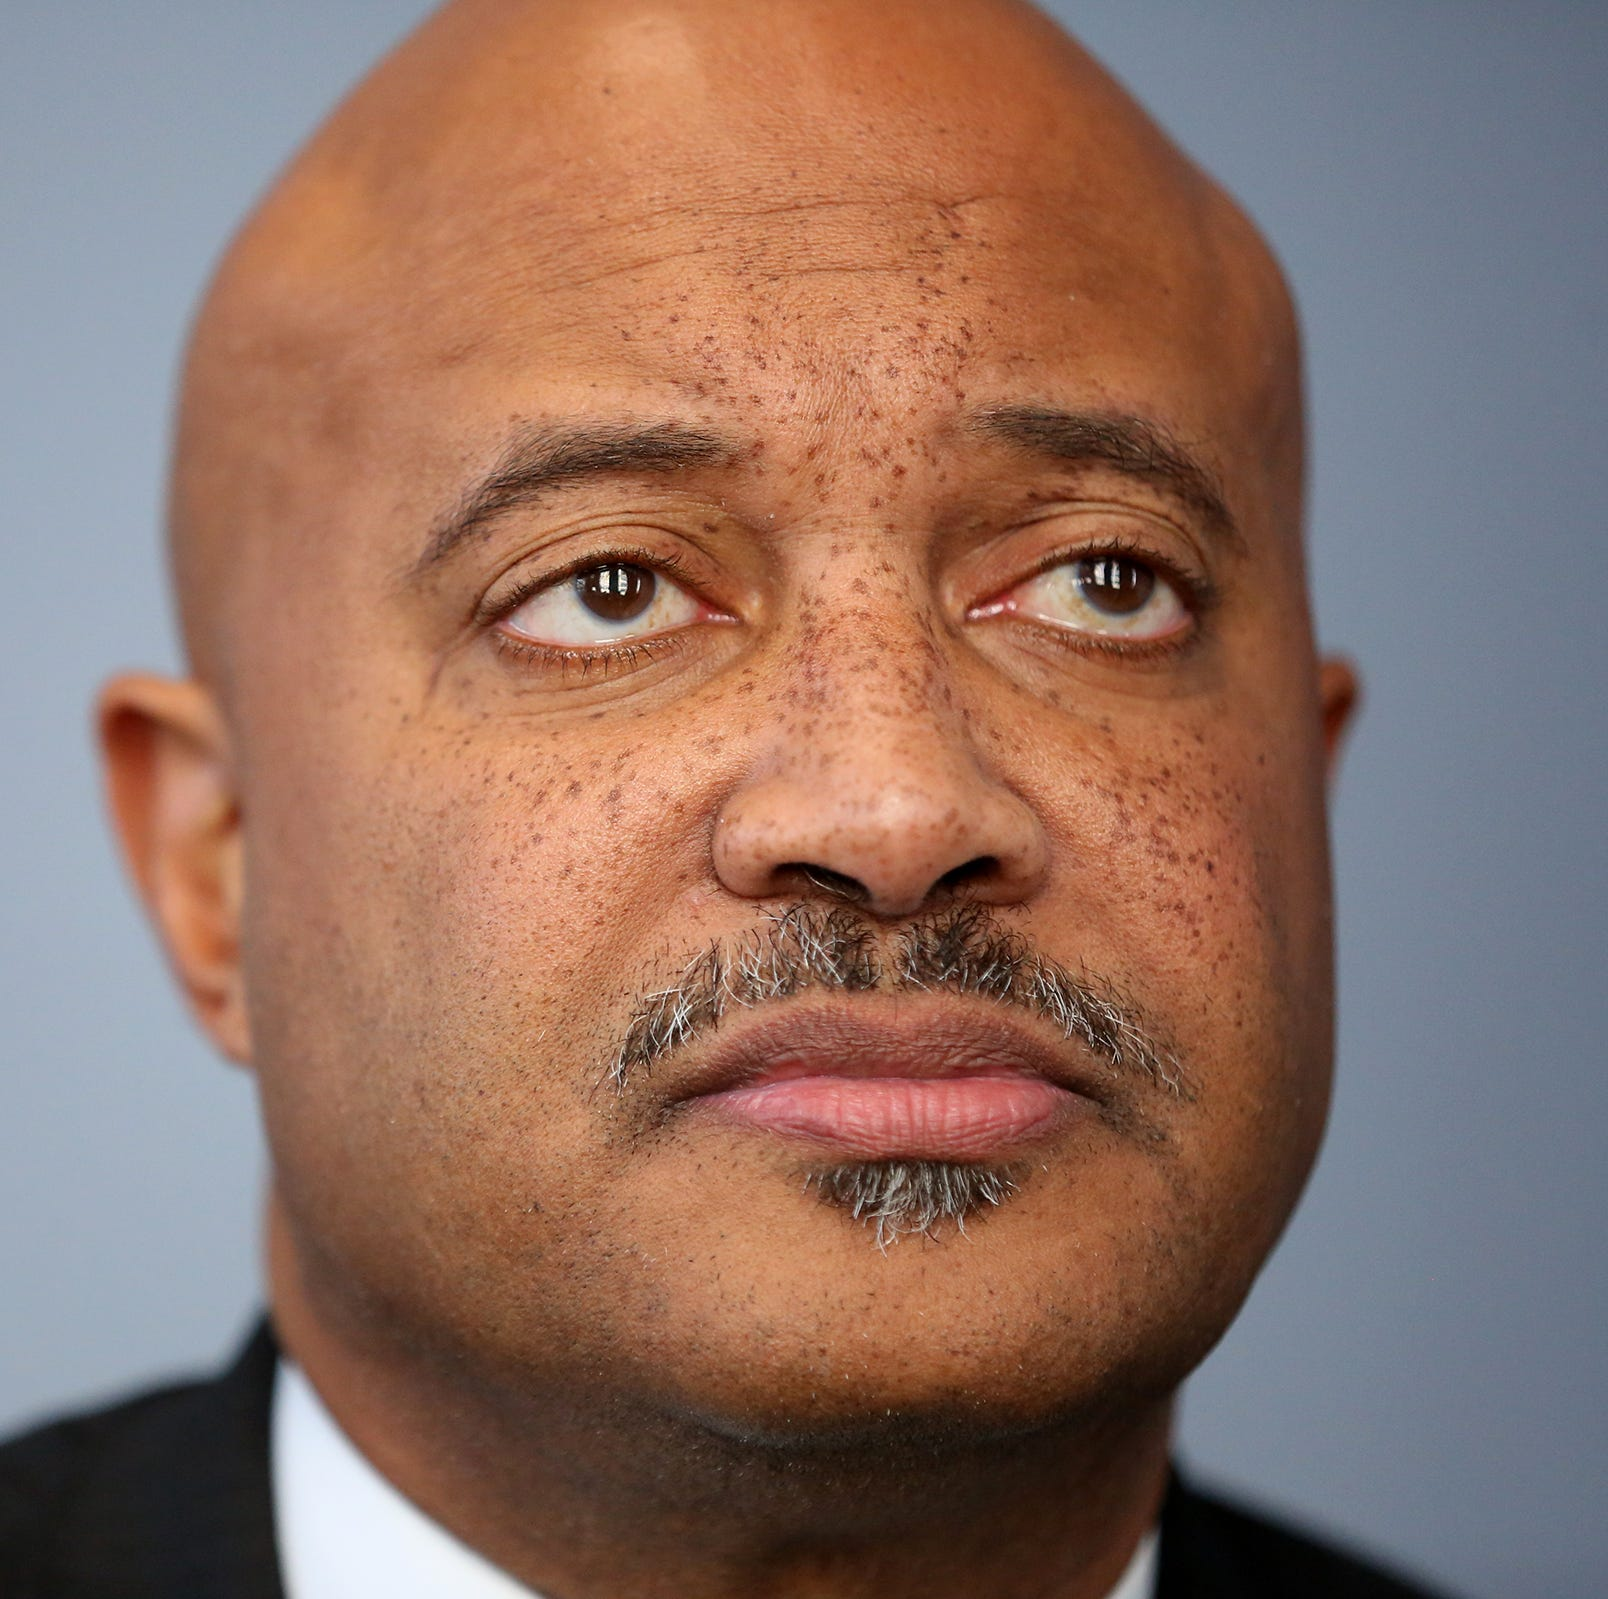 Read Inspector General report on Curtis Hill: 'Inappropriate, creepy, unwelcome'